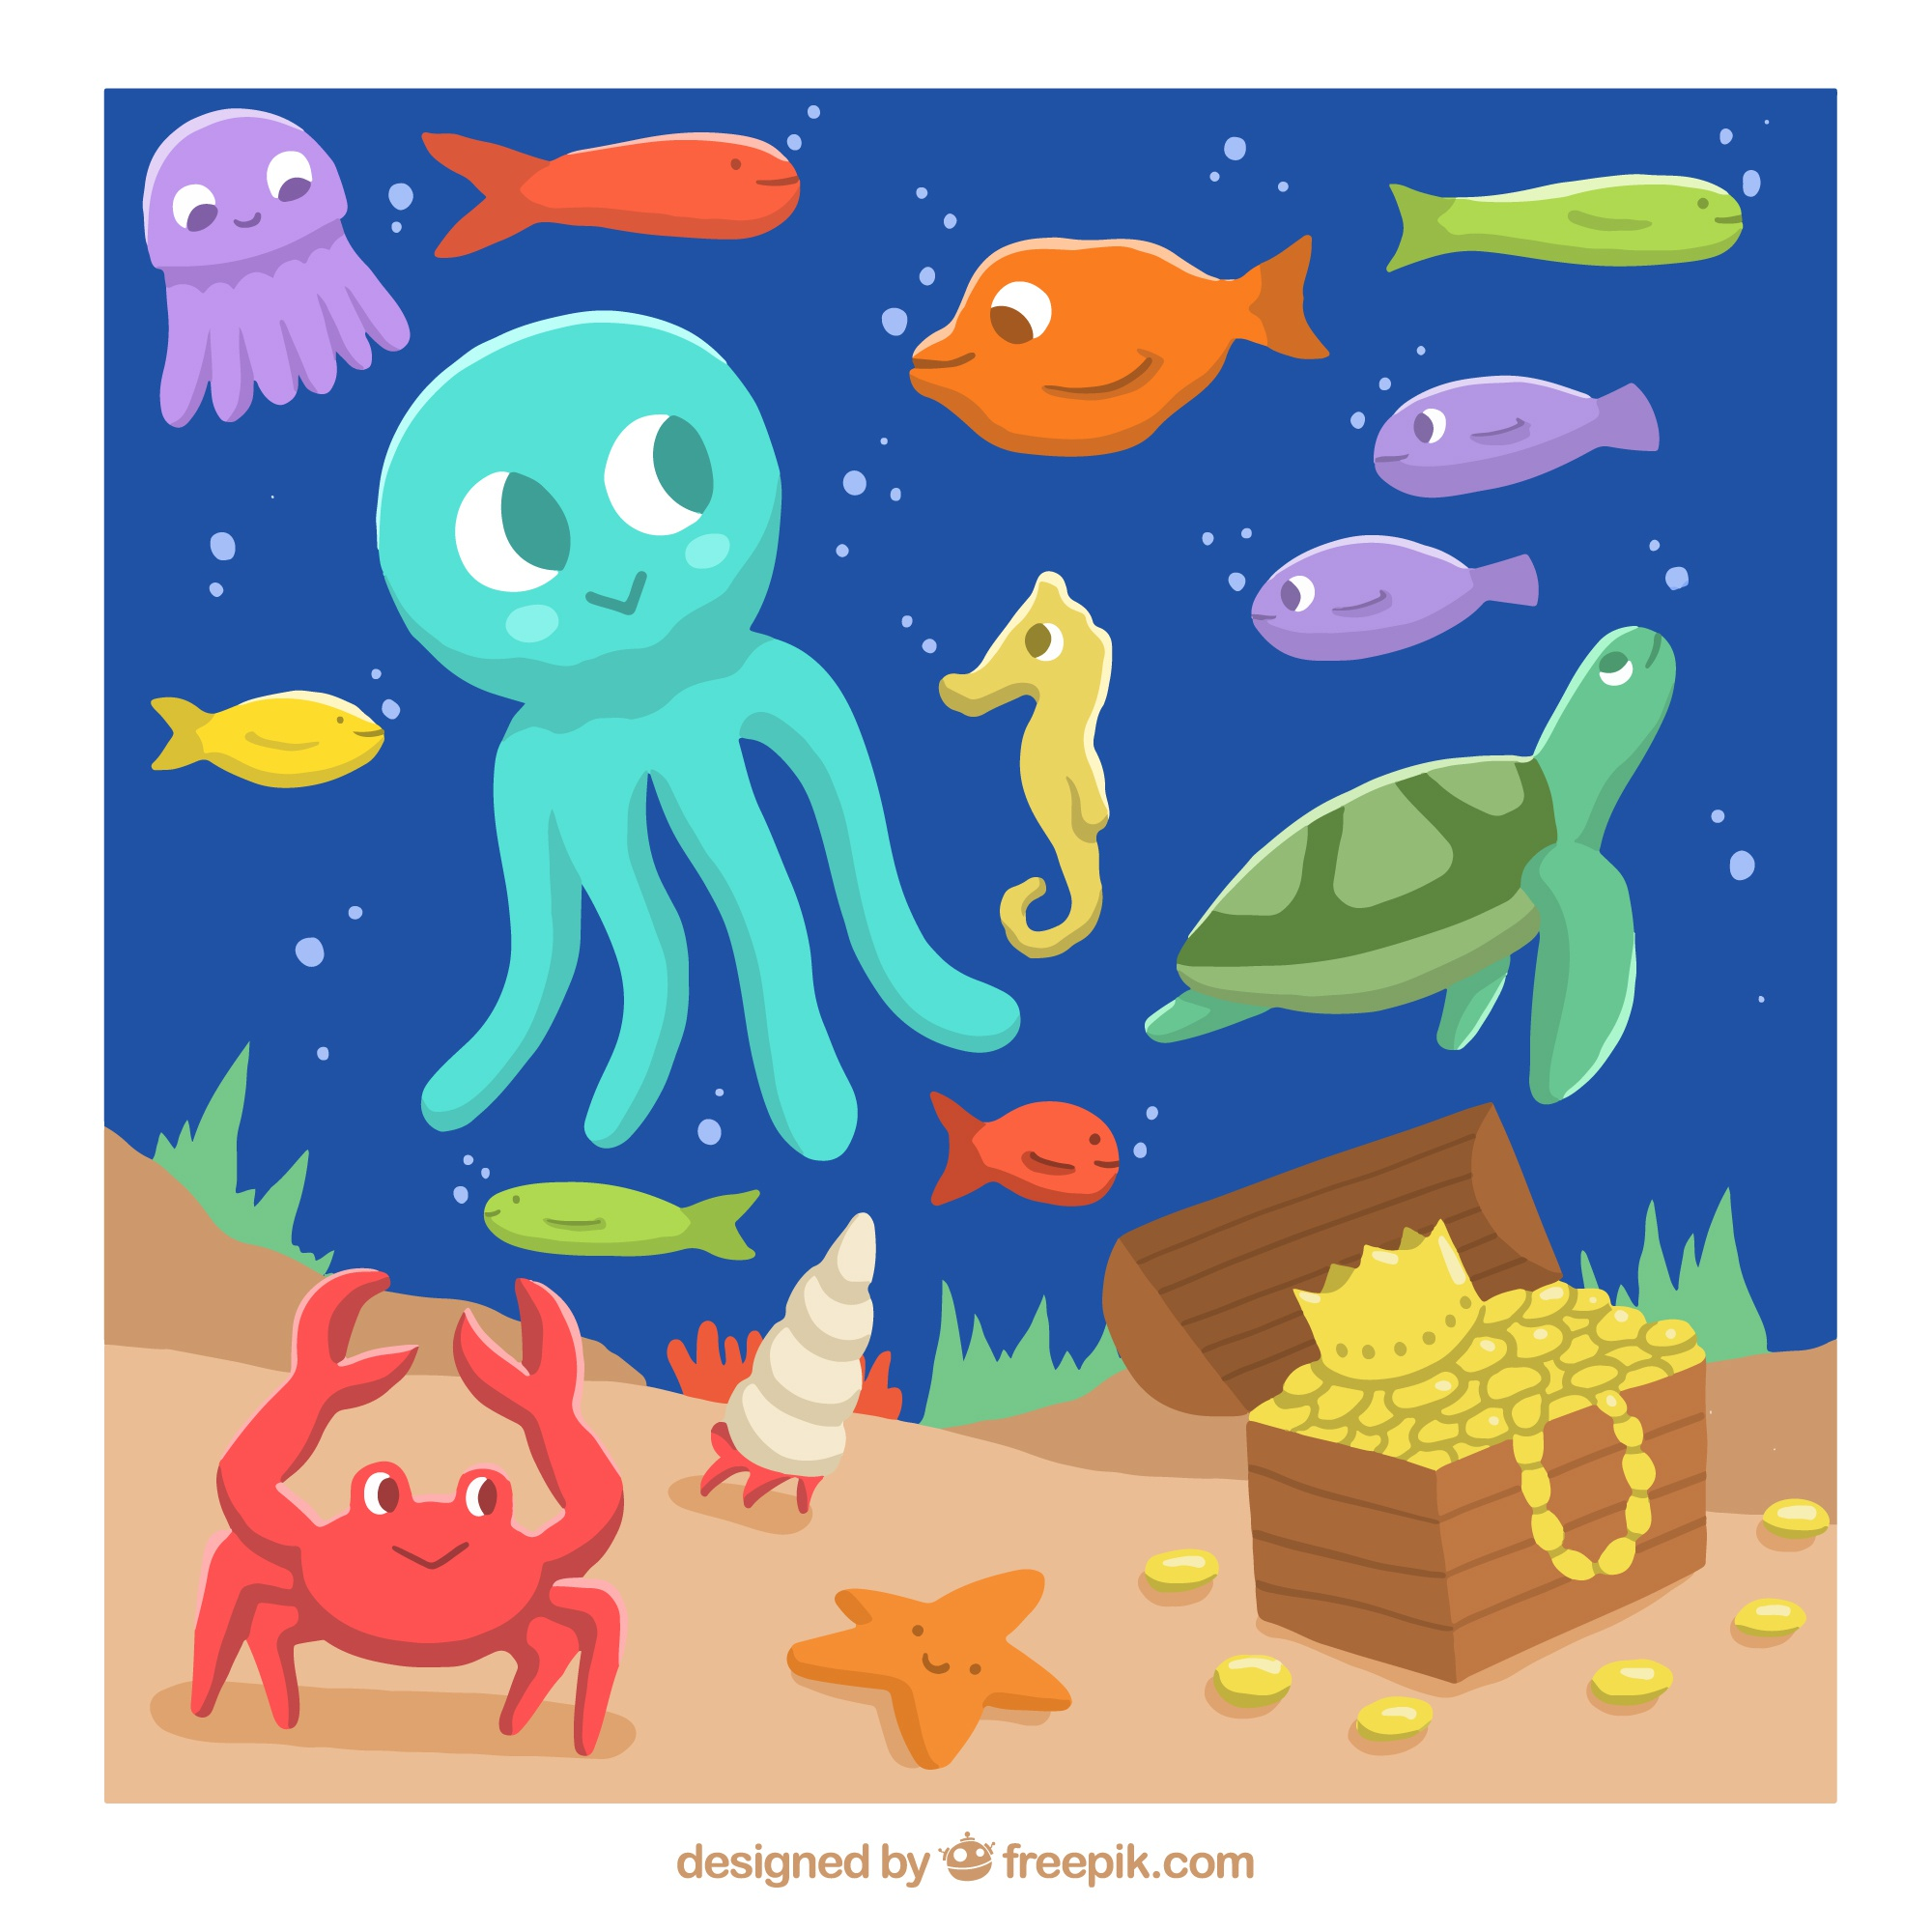 Nice sea creatures on the ocean floor